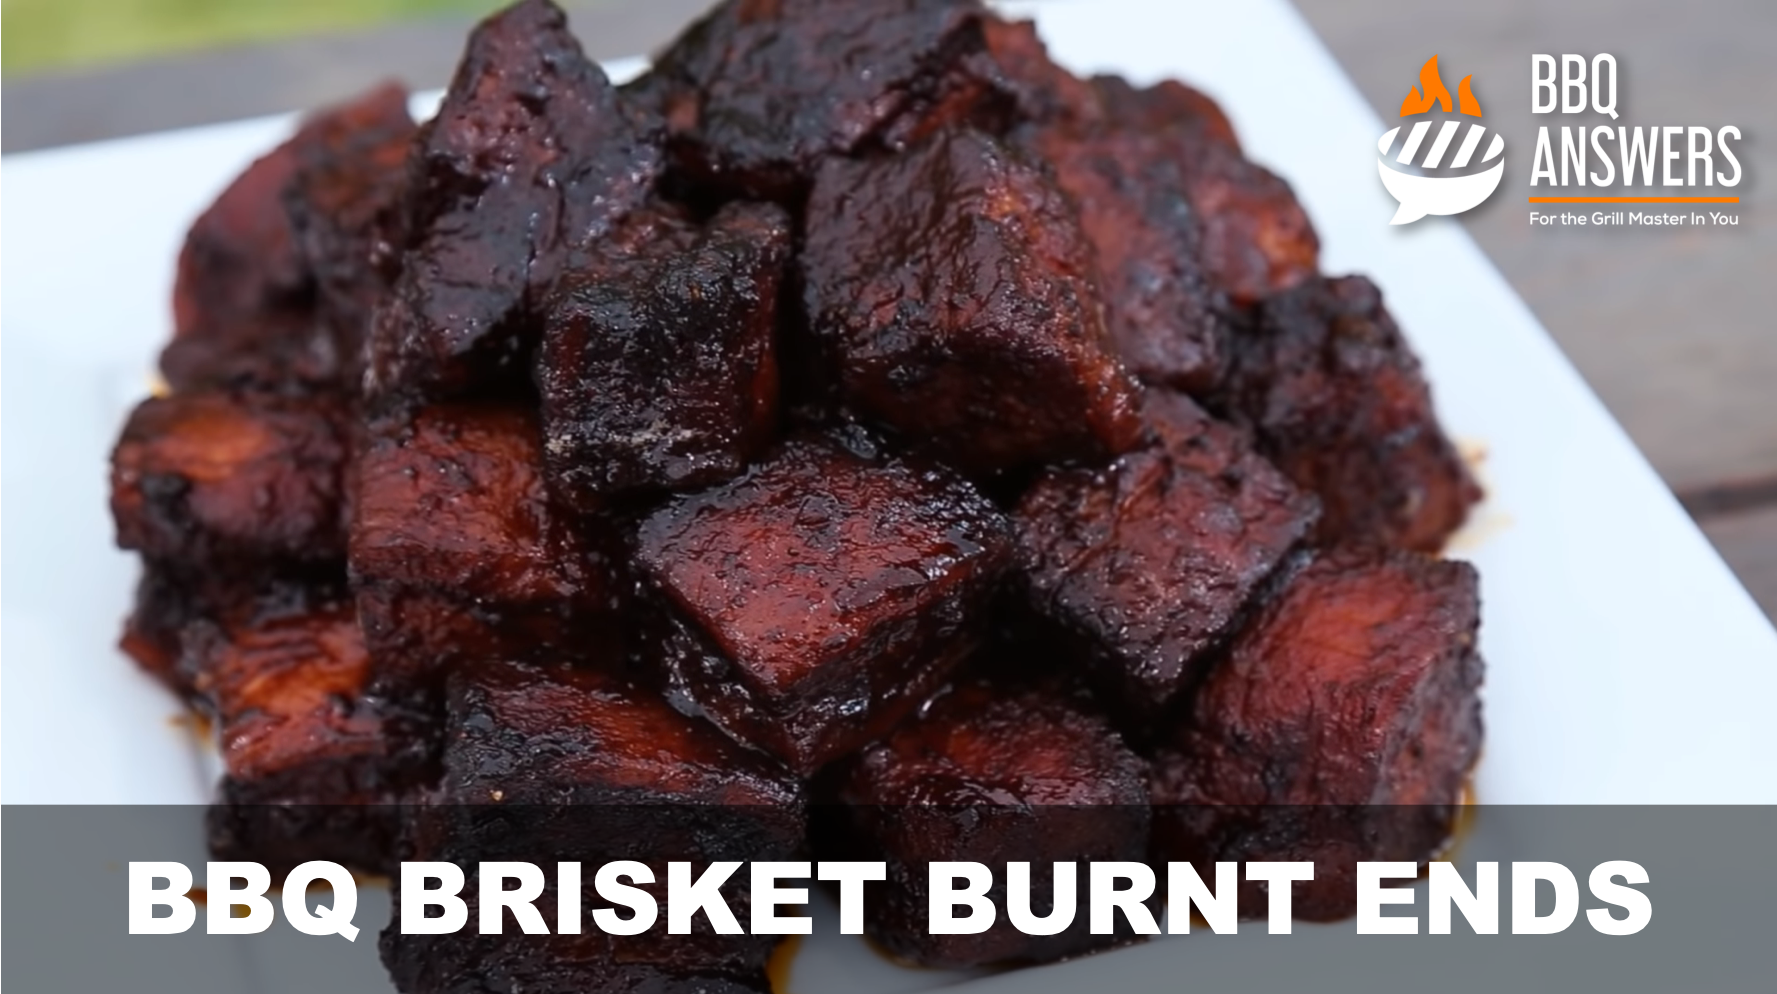 What are BBQ Brisket Burnt Ends? Origins, Recipes, and FAQs